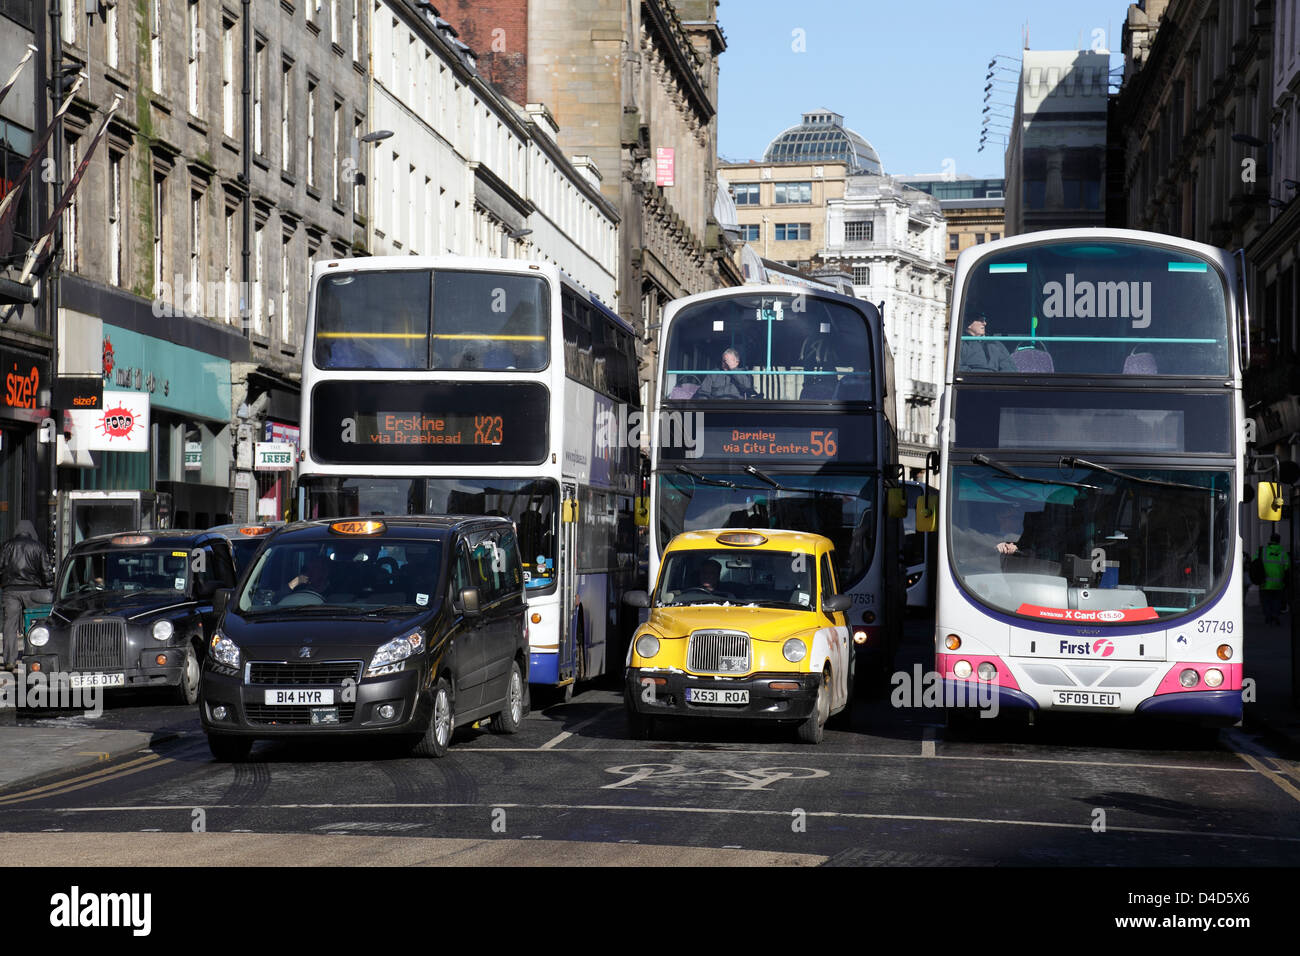 Buses and taxis on Union Street in Glasgow city centre, Scotland, UK Stock Photo